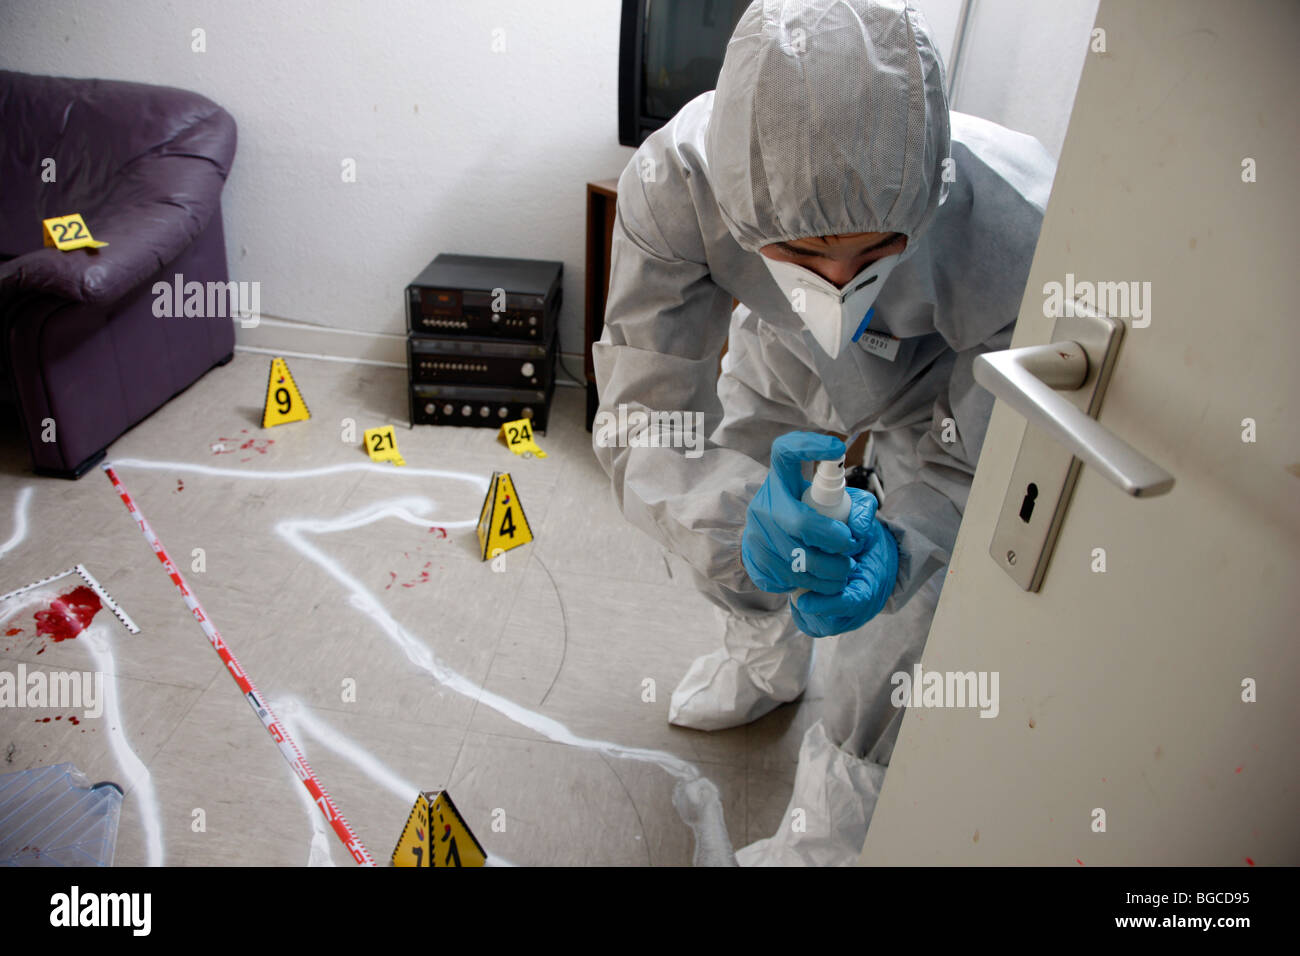 forensics in crime for humans and A critical link in the impact of this evidence is the amount of information that can be obtained through analyses at a forensics laboratory in collaboration with various human crime laboratories.